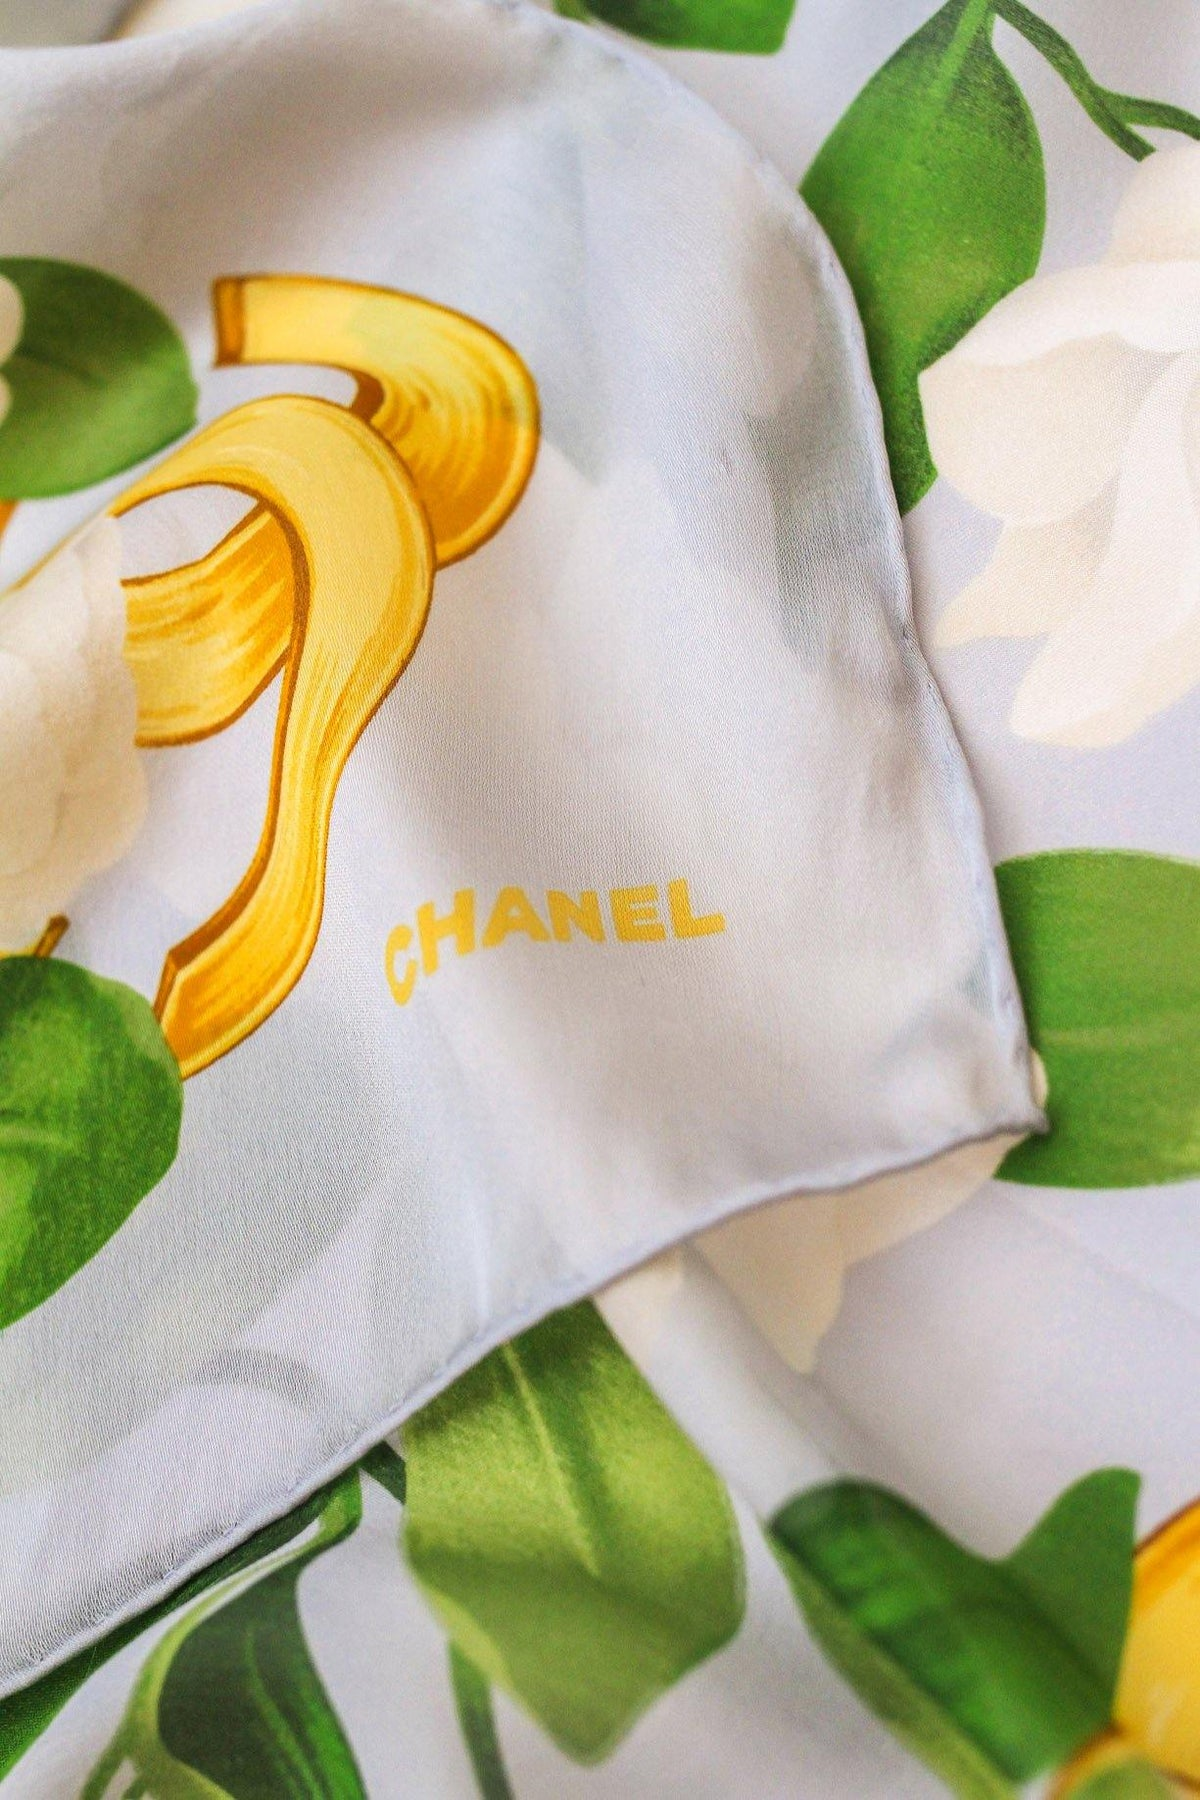 Vintage Chanel Light Blue Camellia Scarf from  Sweet & Spark.